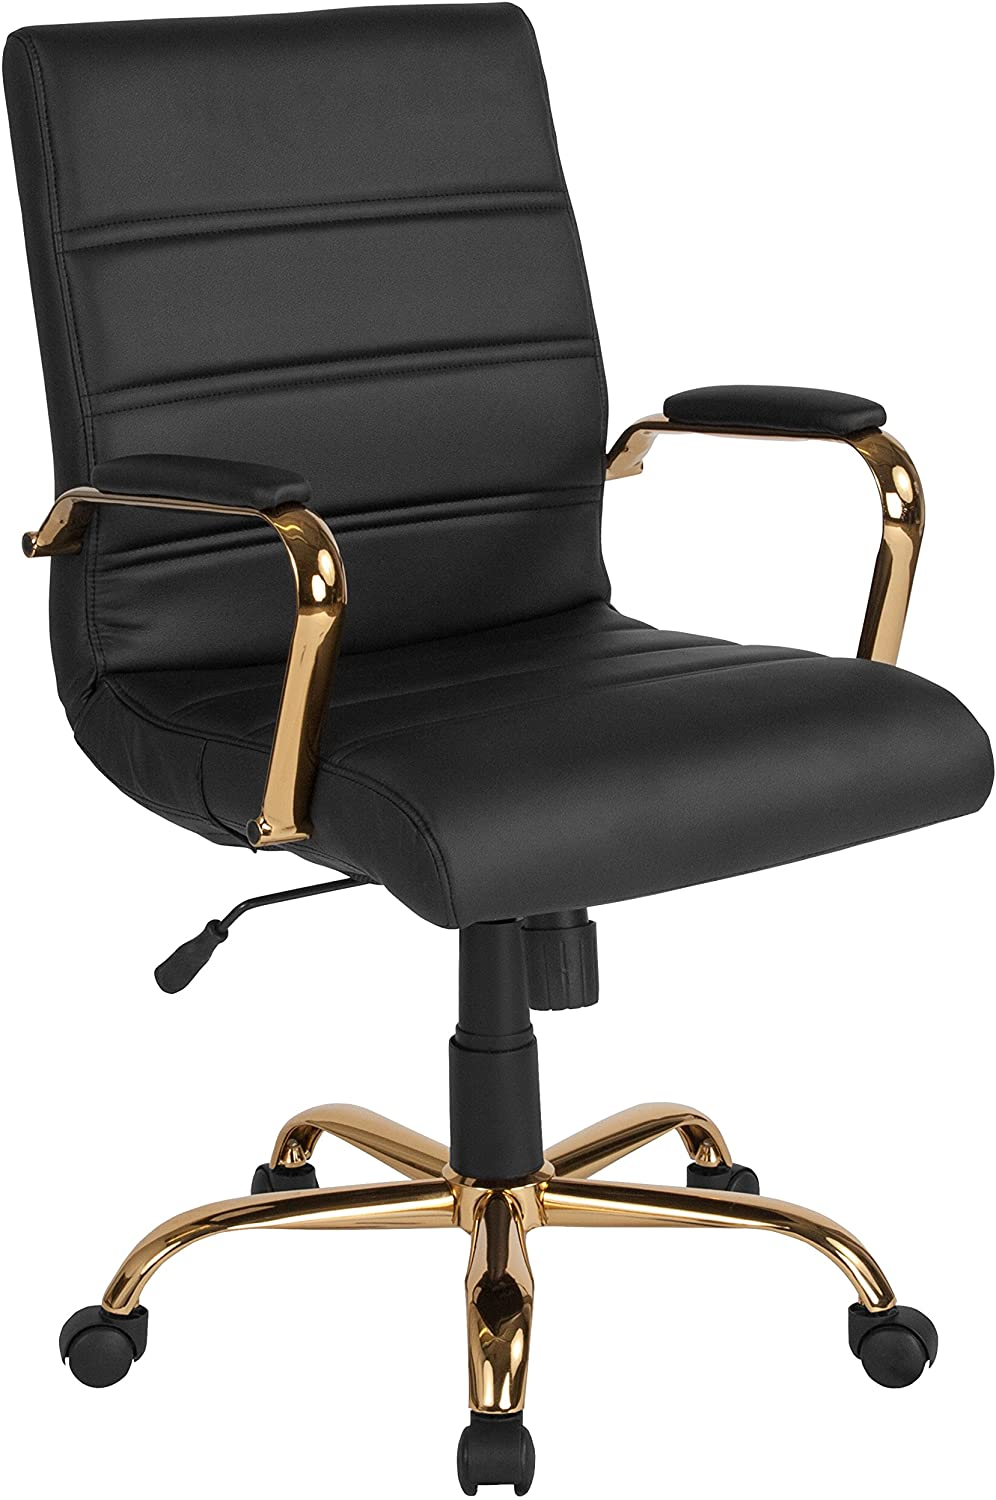 Flash Furniture Mid-Back Black LeatherSoft Executive Swivel Office Chair with Gold Frame and Arms, BIFMA Certified